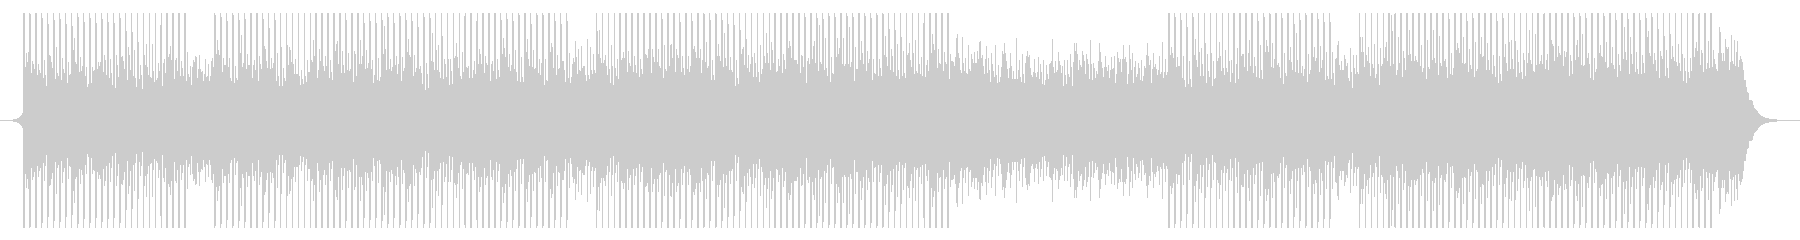 Corporate Event's unreproduced waveform